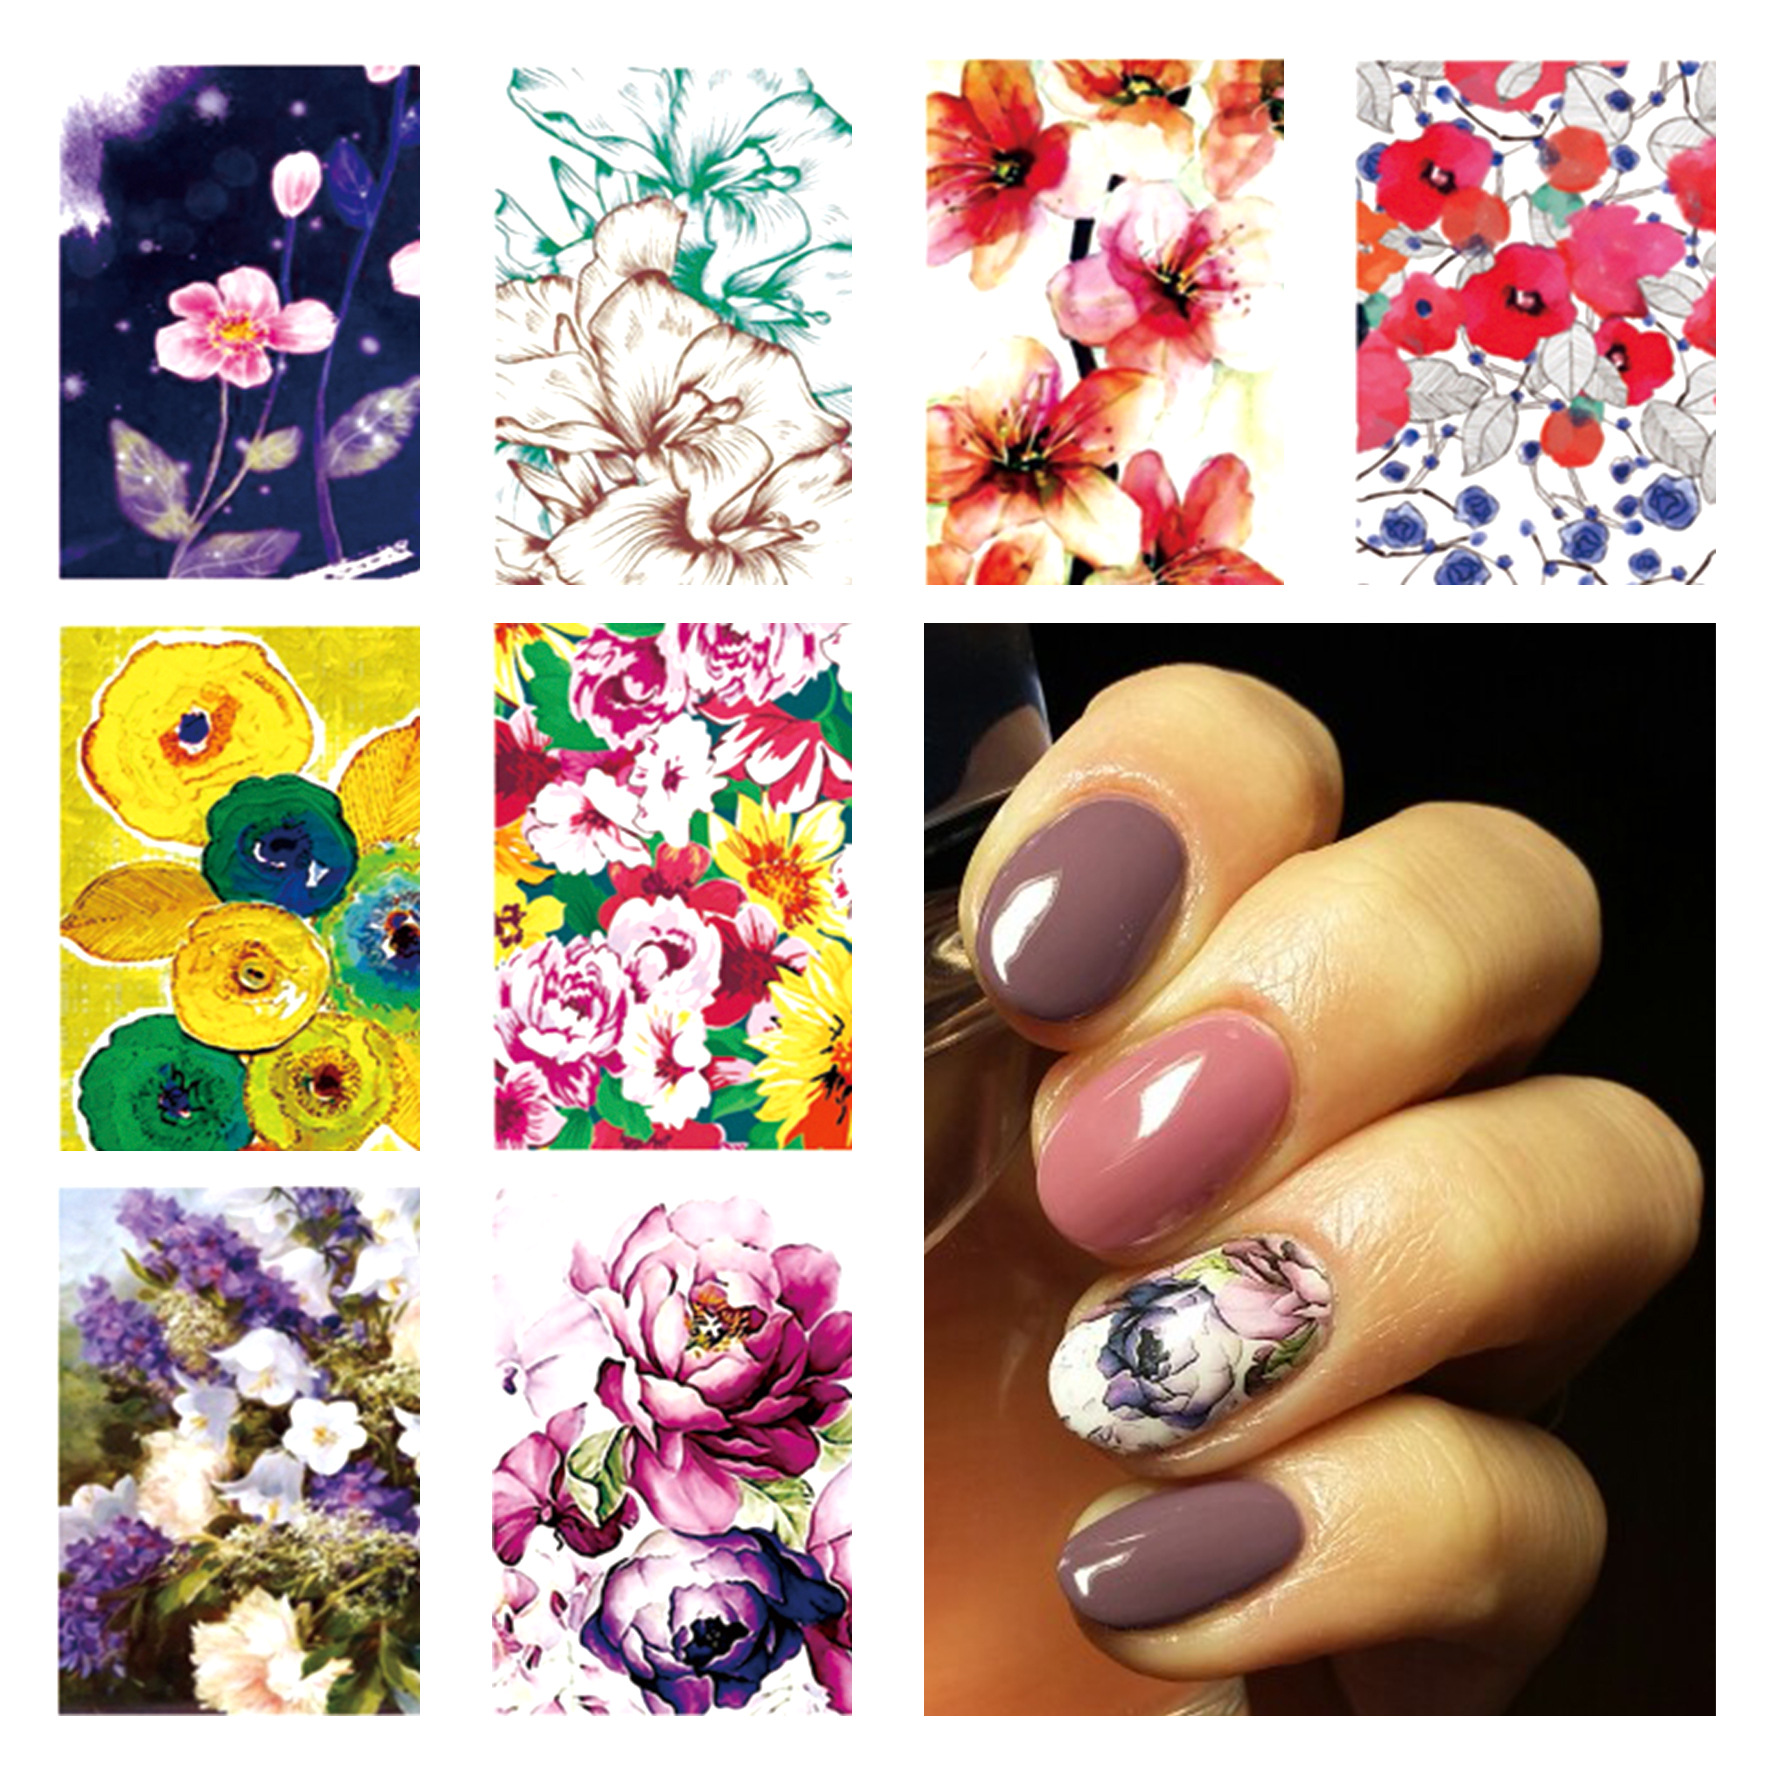 Yzwle Nail Sticker AliExpress Amazon Foreign Trade Hot Selling Water Transfer Manicure Flower Stickers Thousand-Summary